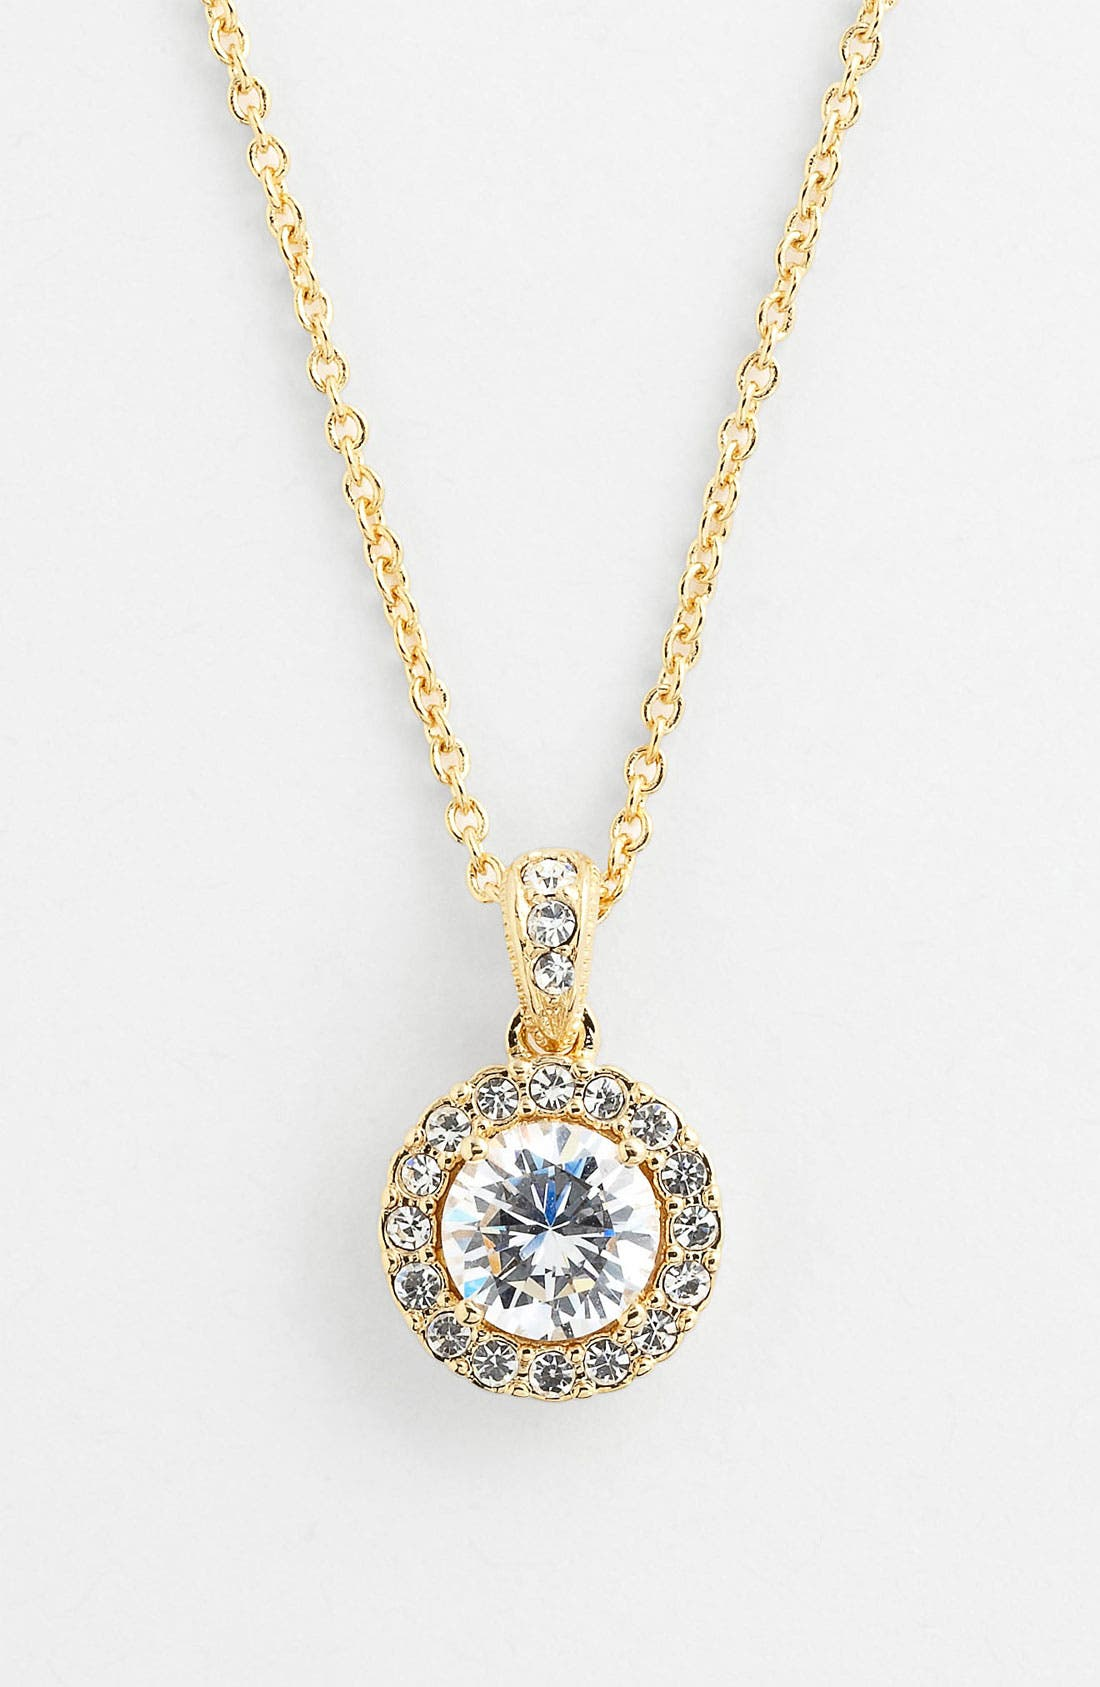 Main Image - Nadri Framed Round Cubic Zirconia Boxed Necklace (Nordstrom Exclusive)